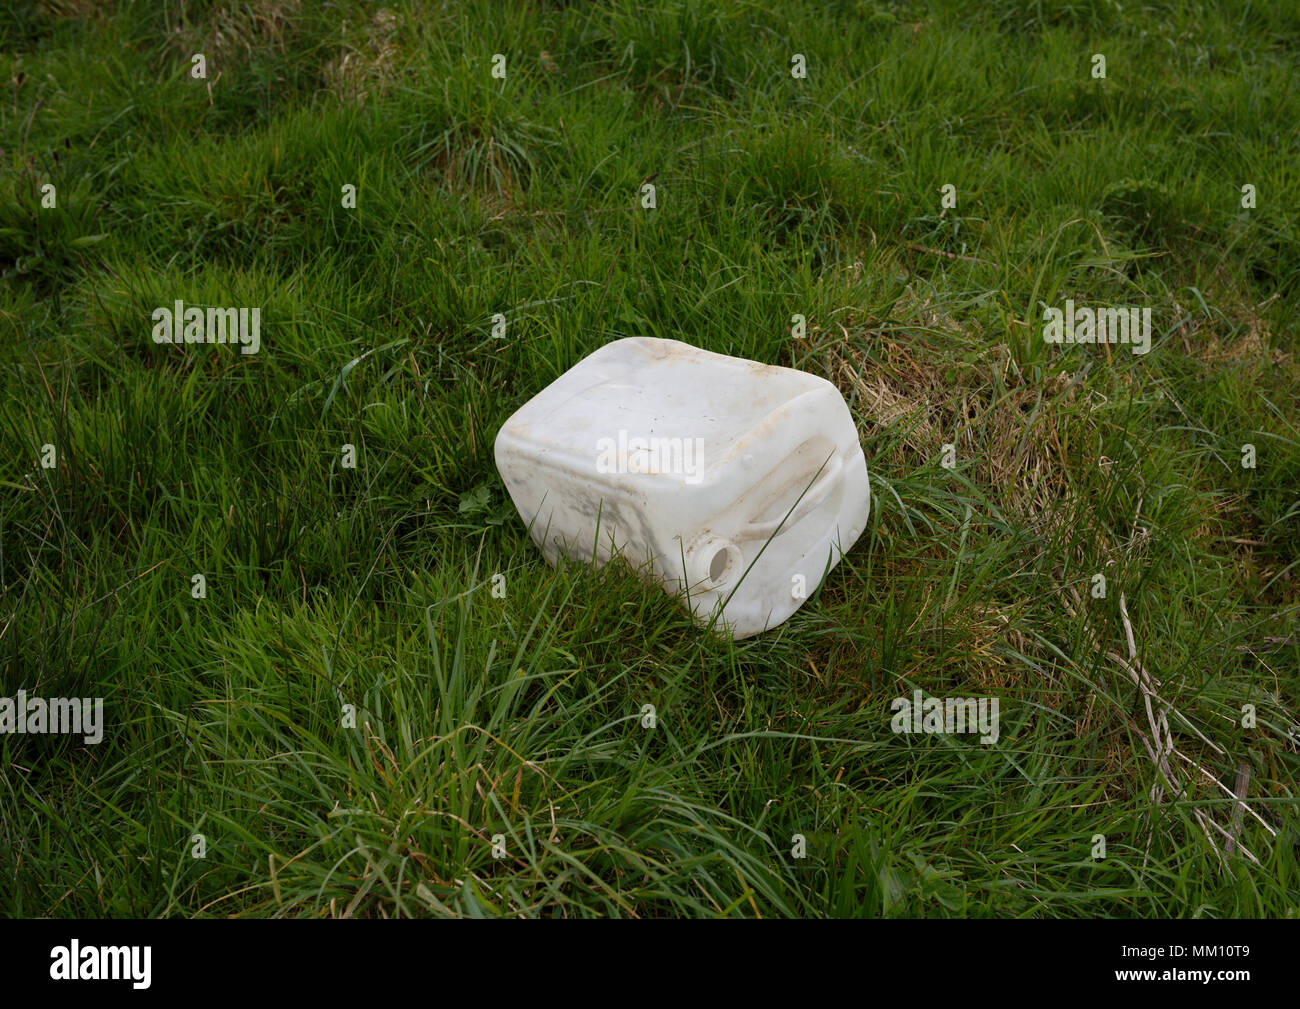 Plastic container thrown away on grass on coastal footpath in north wales uk Stock Photo